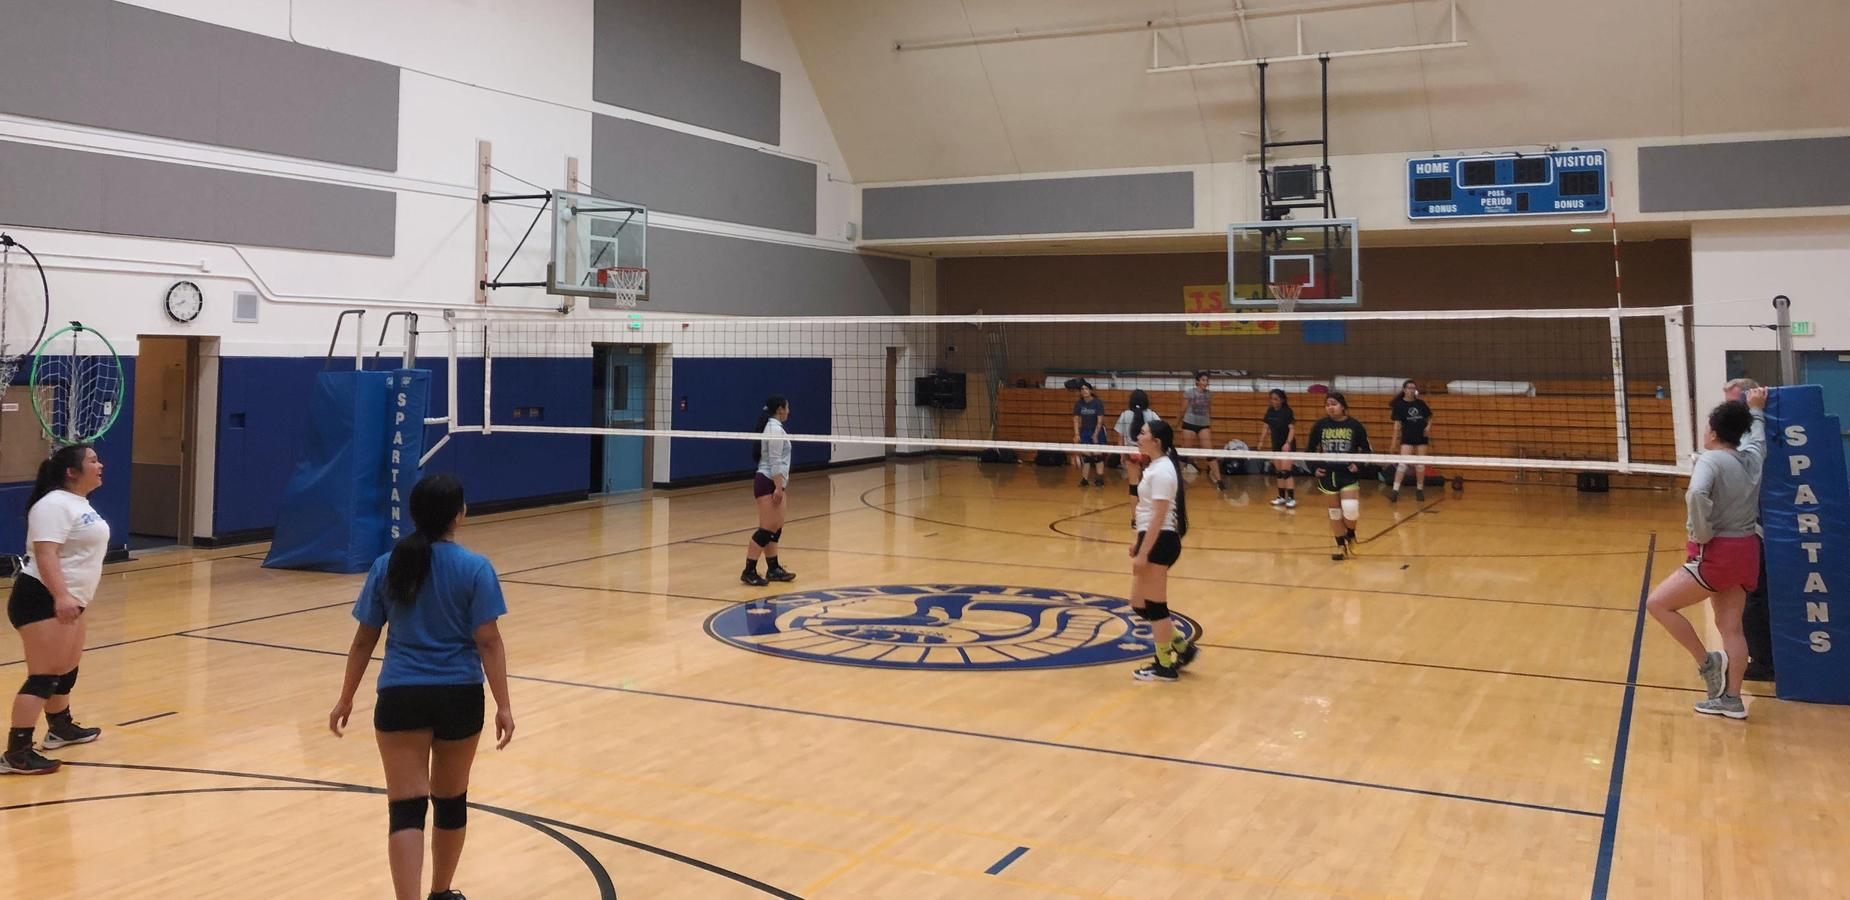 volley ball team at practice in the school gym